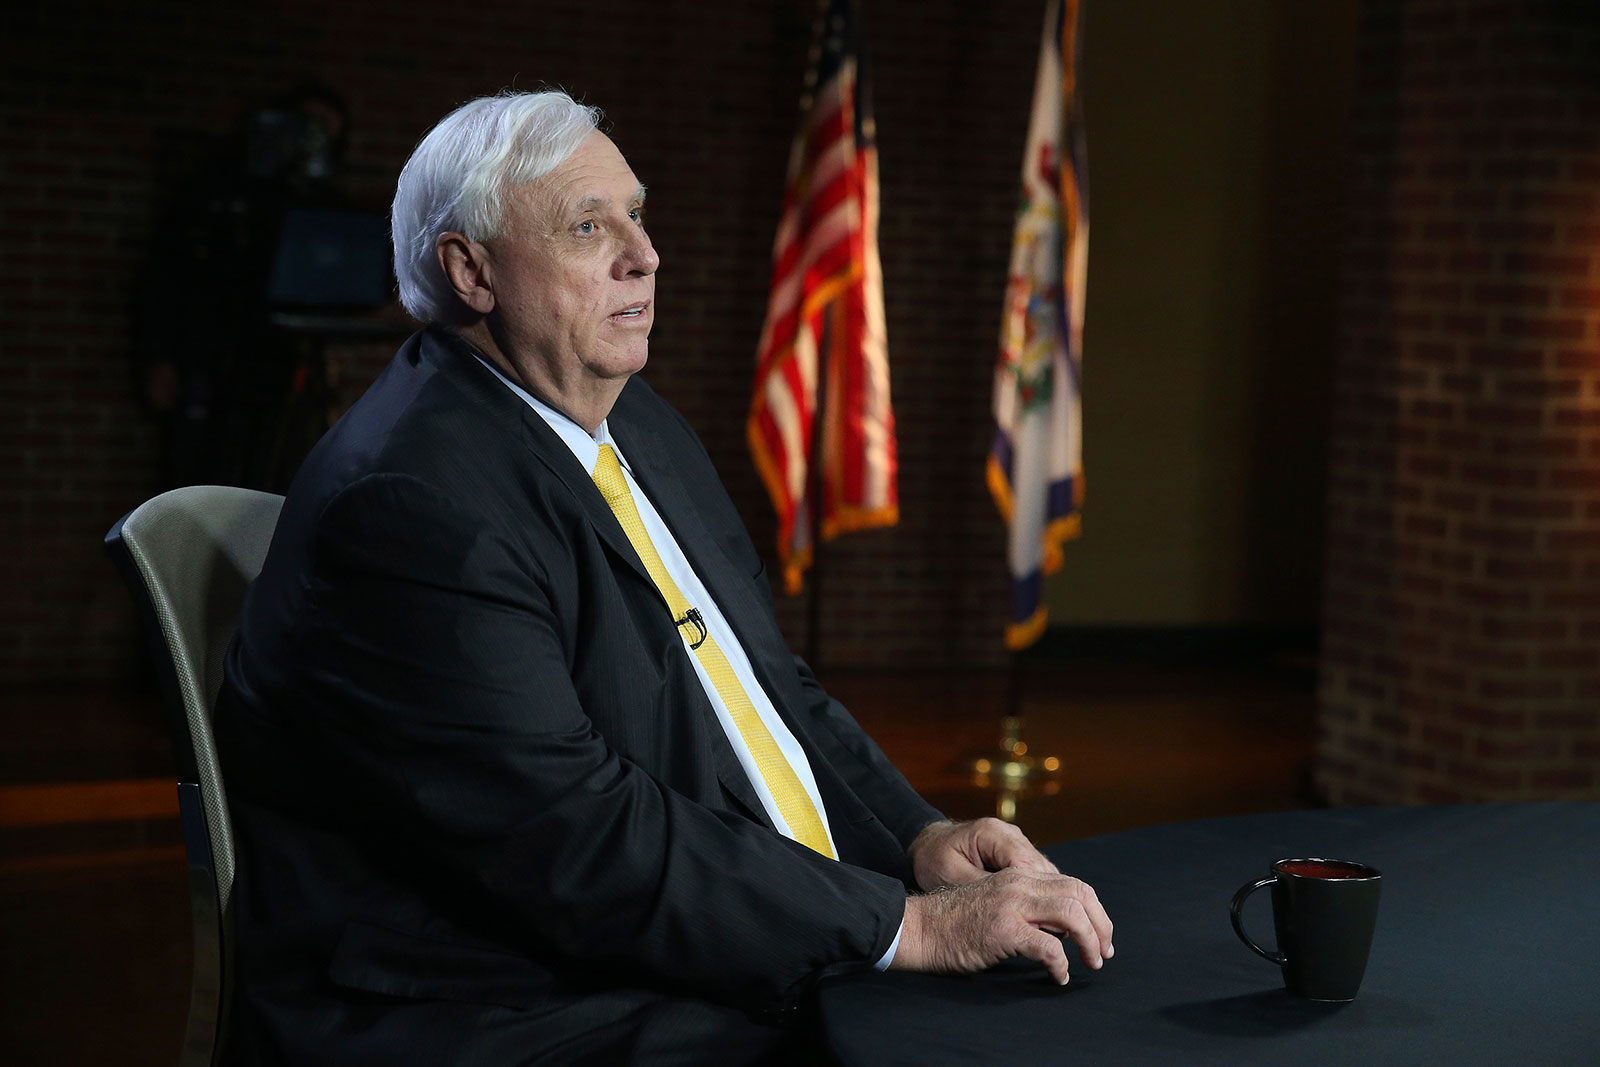 West Virginia Gov. Jim Justice prepares for a debate in Morgantown, West Virginia, in October.